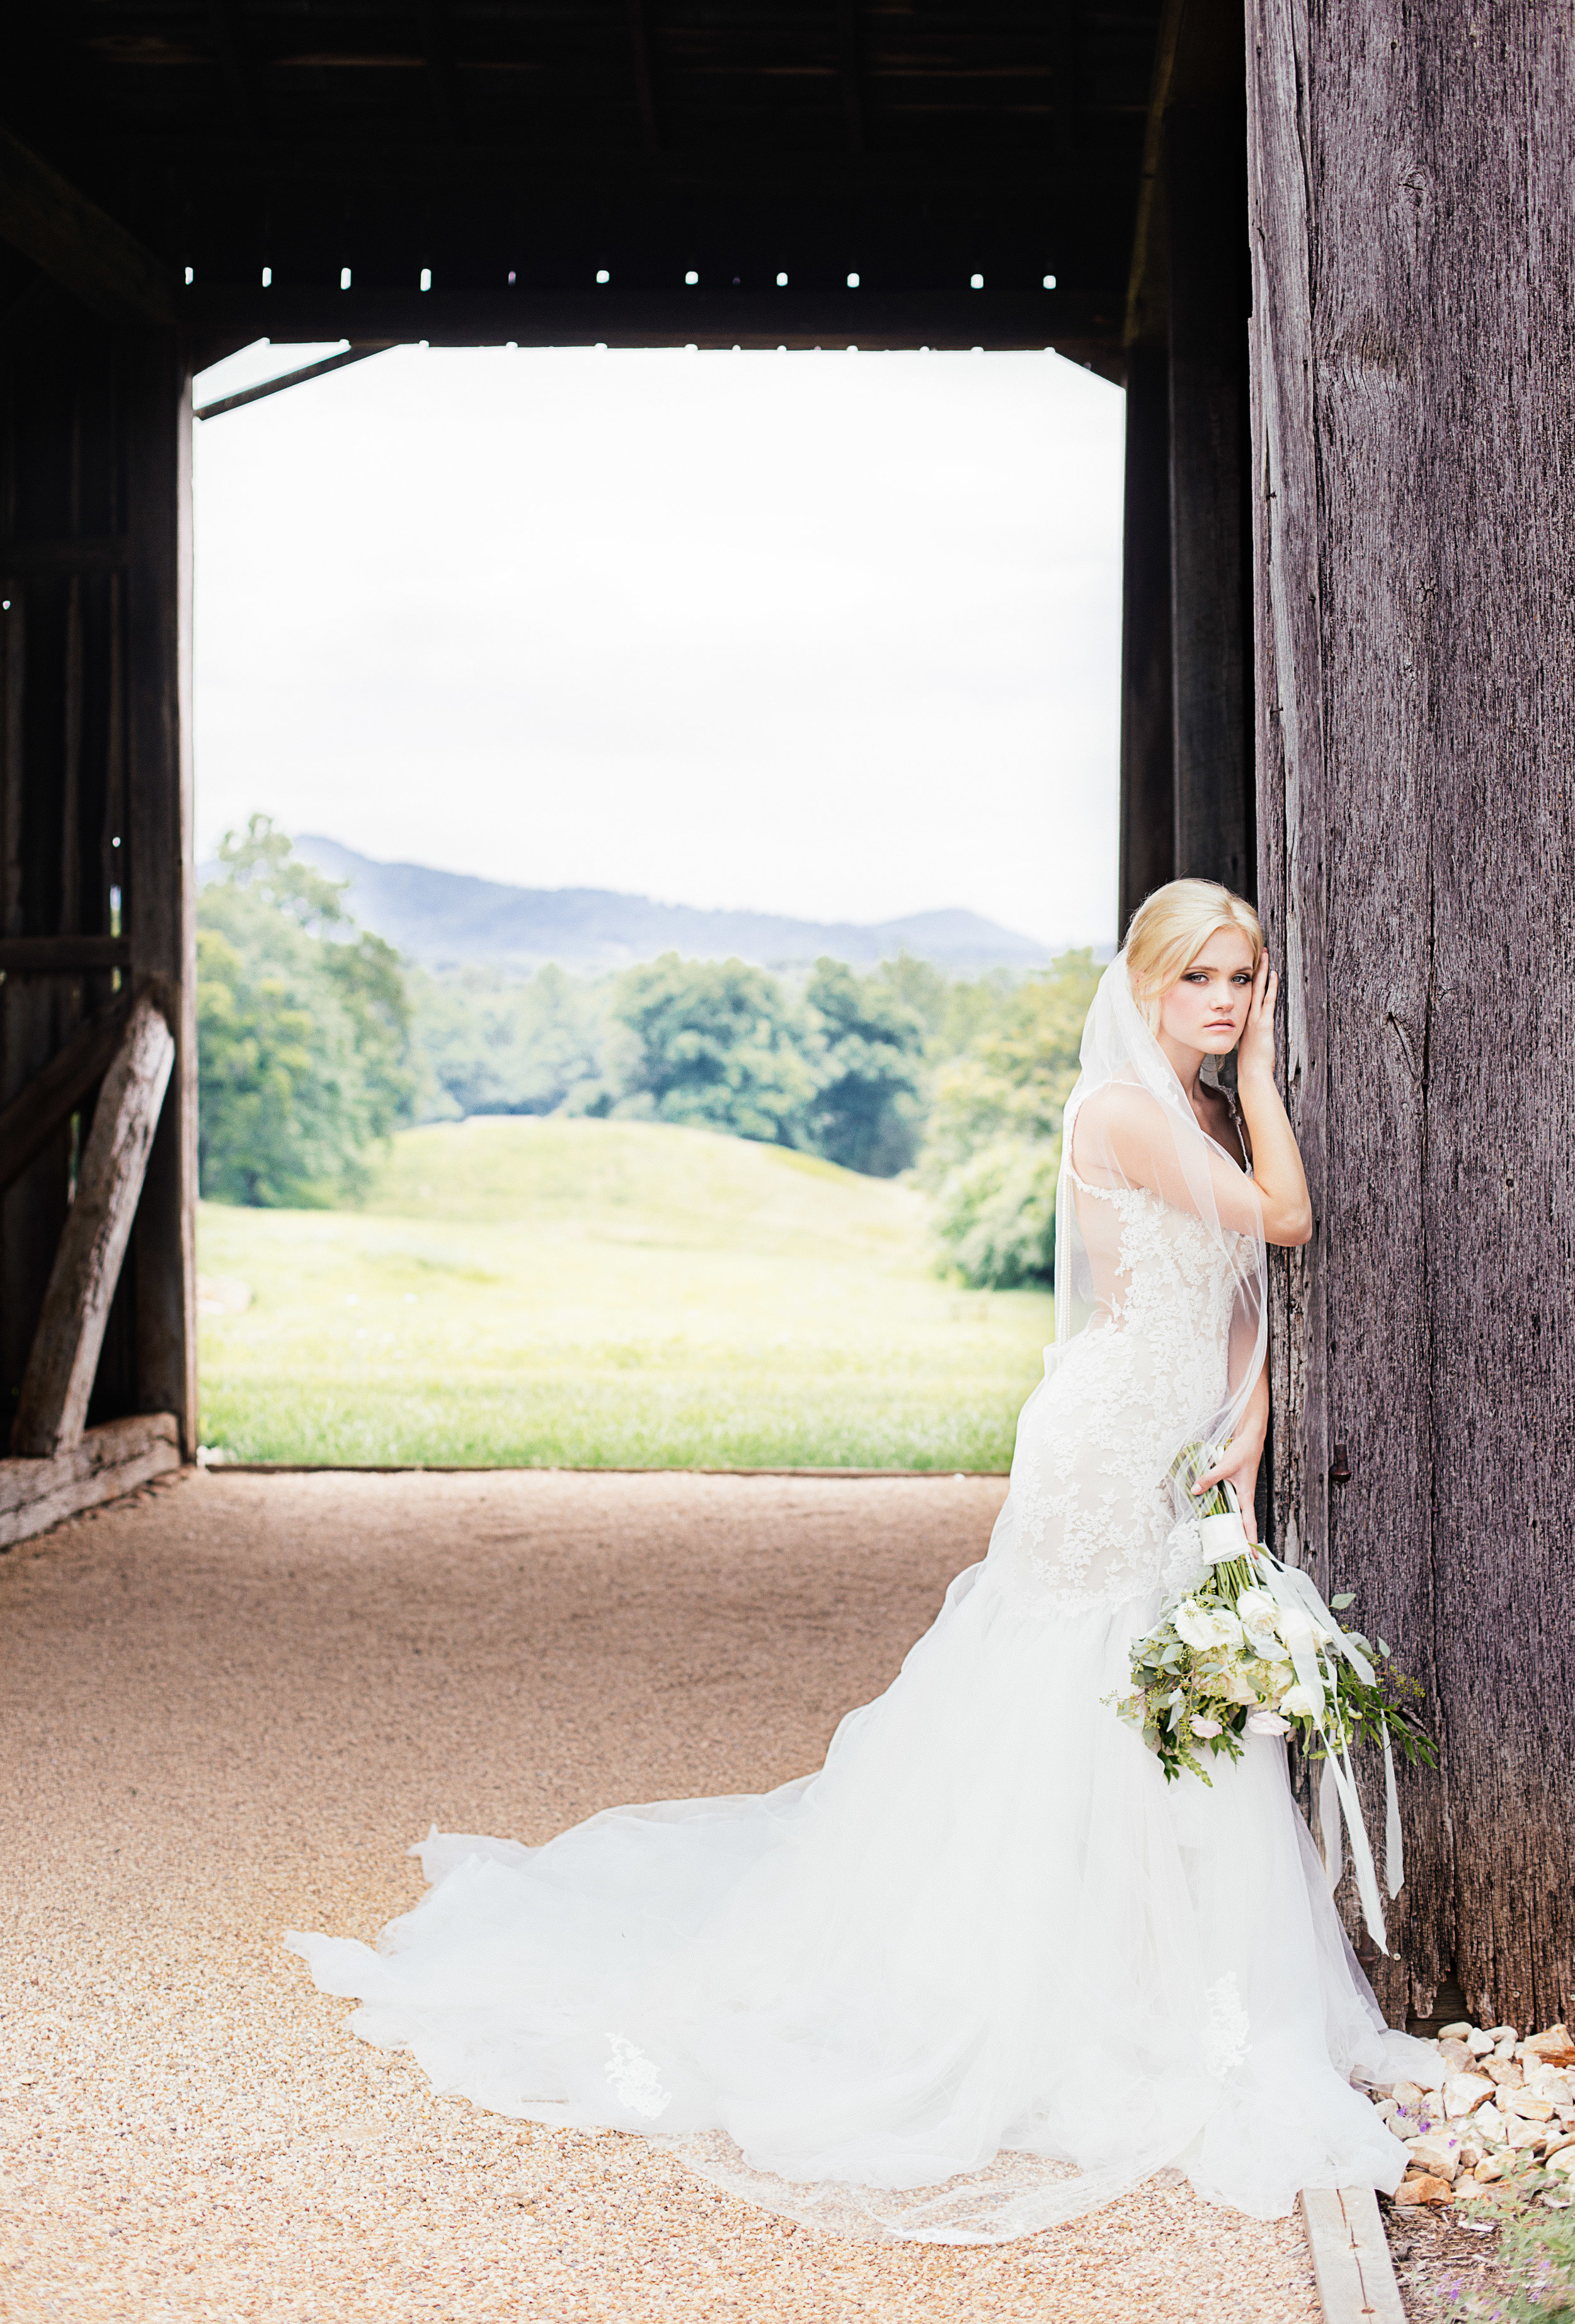 As Featured on Wedding Chicks, The Knot and Wedding Wire Magazines  Makeup Artist Danielle